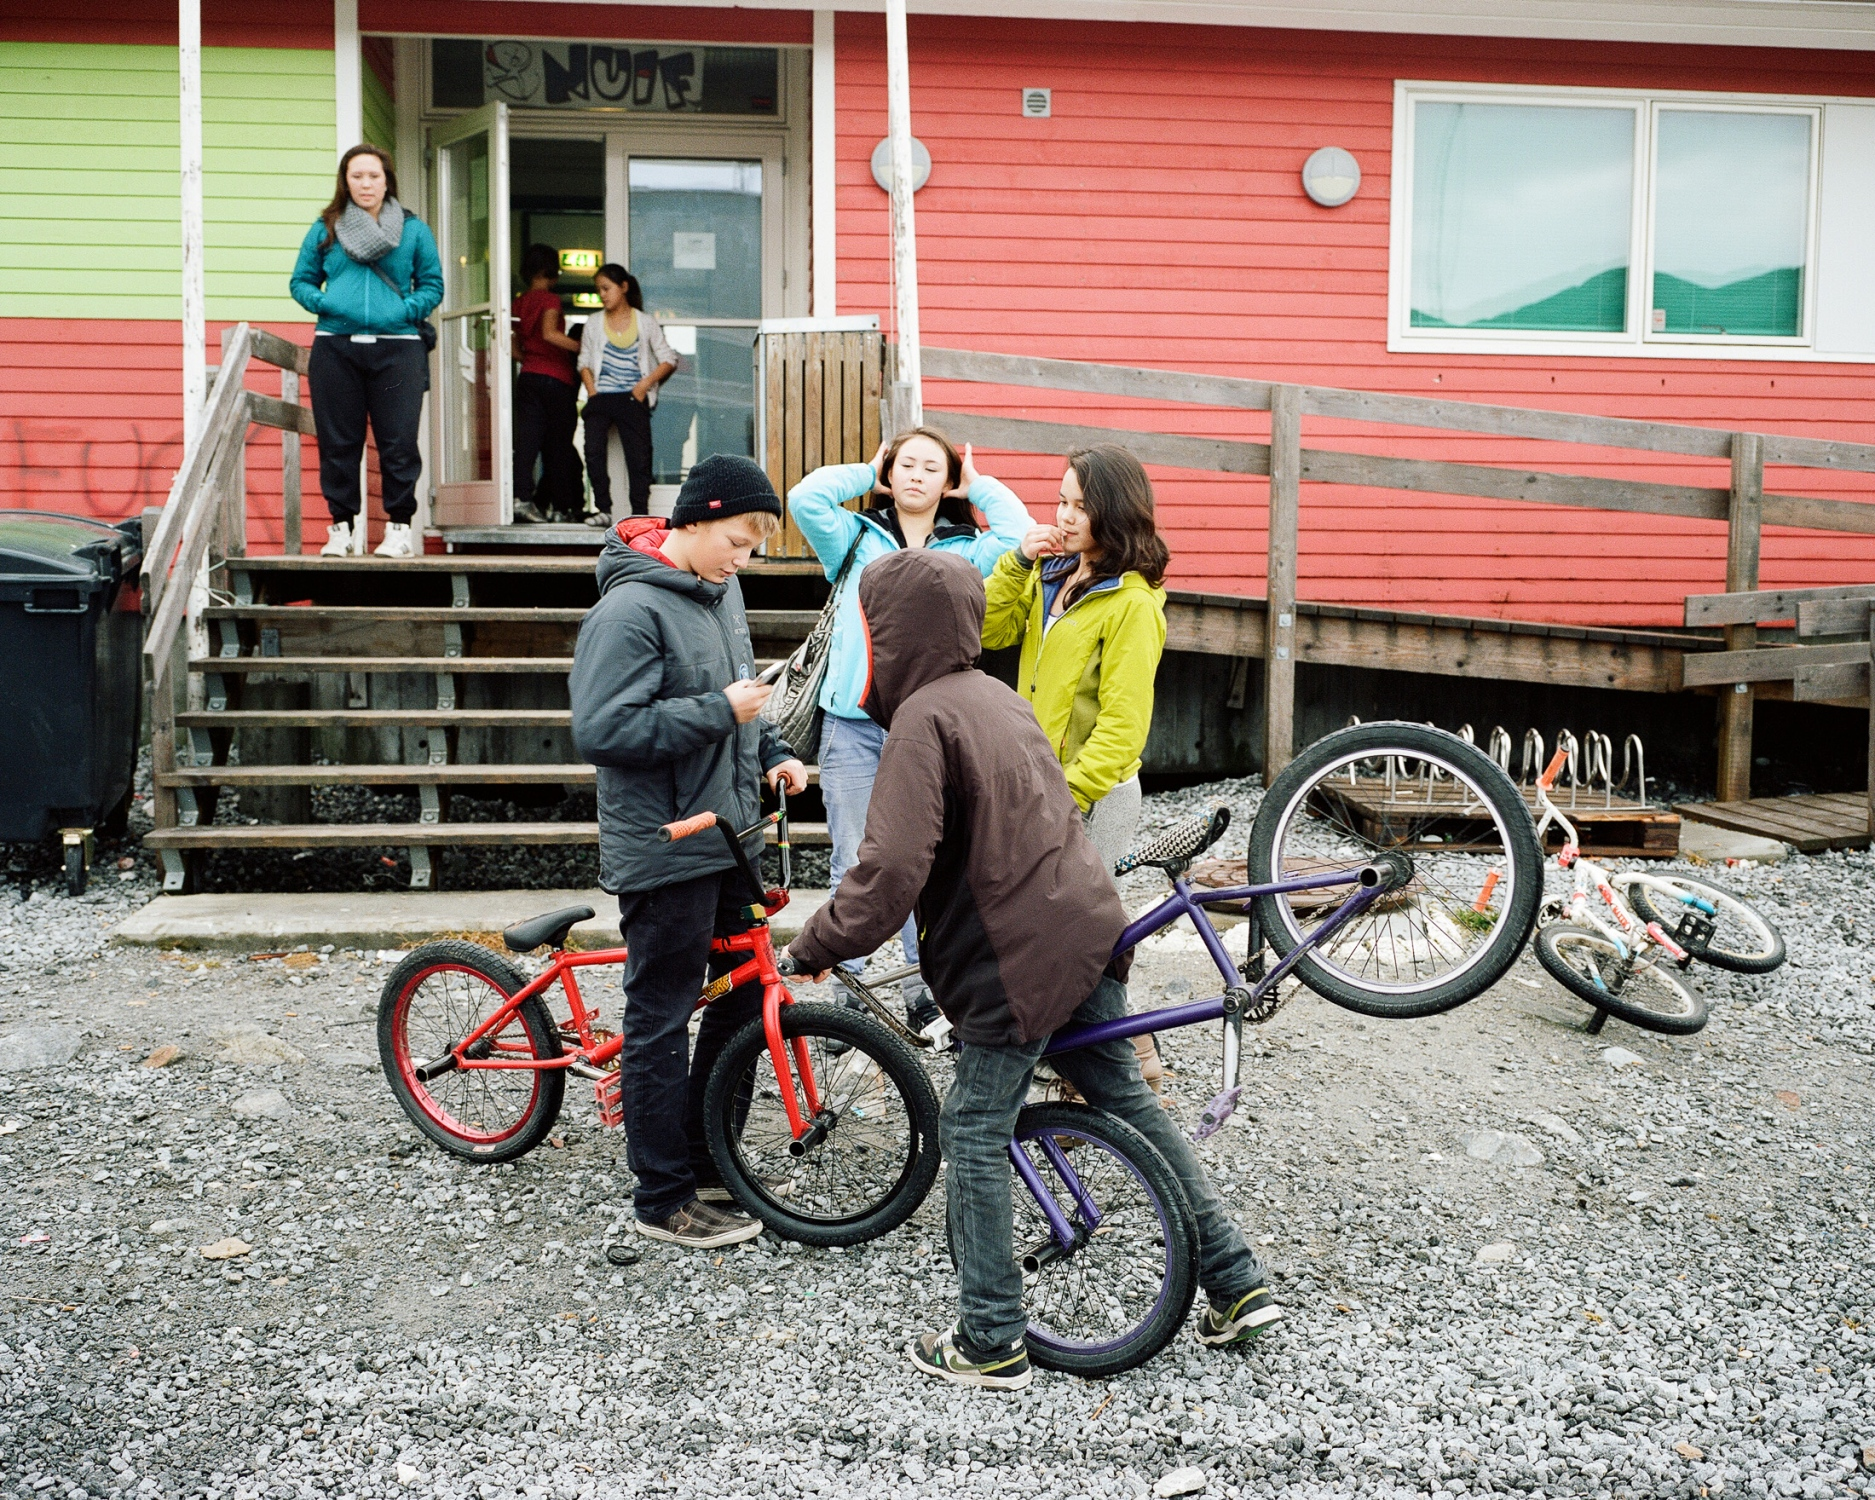 Today most of the youngsters turn away from the traditional Inuit lifestyle attracted by westernized culture such as in the USA or in Denmark where they usually go to study if they follow a curriculum at the university. After a breakdance class, youngsters in front of the Nuuk youth center. Nuuk is the capital and administrative center of Greenland concentrating the home rule government institutions.